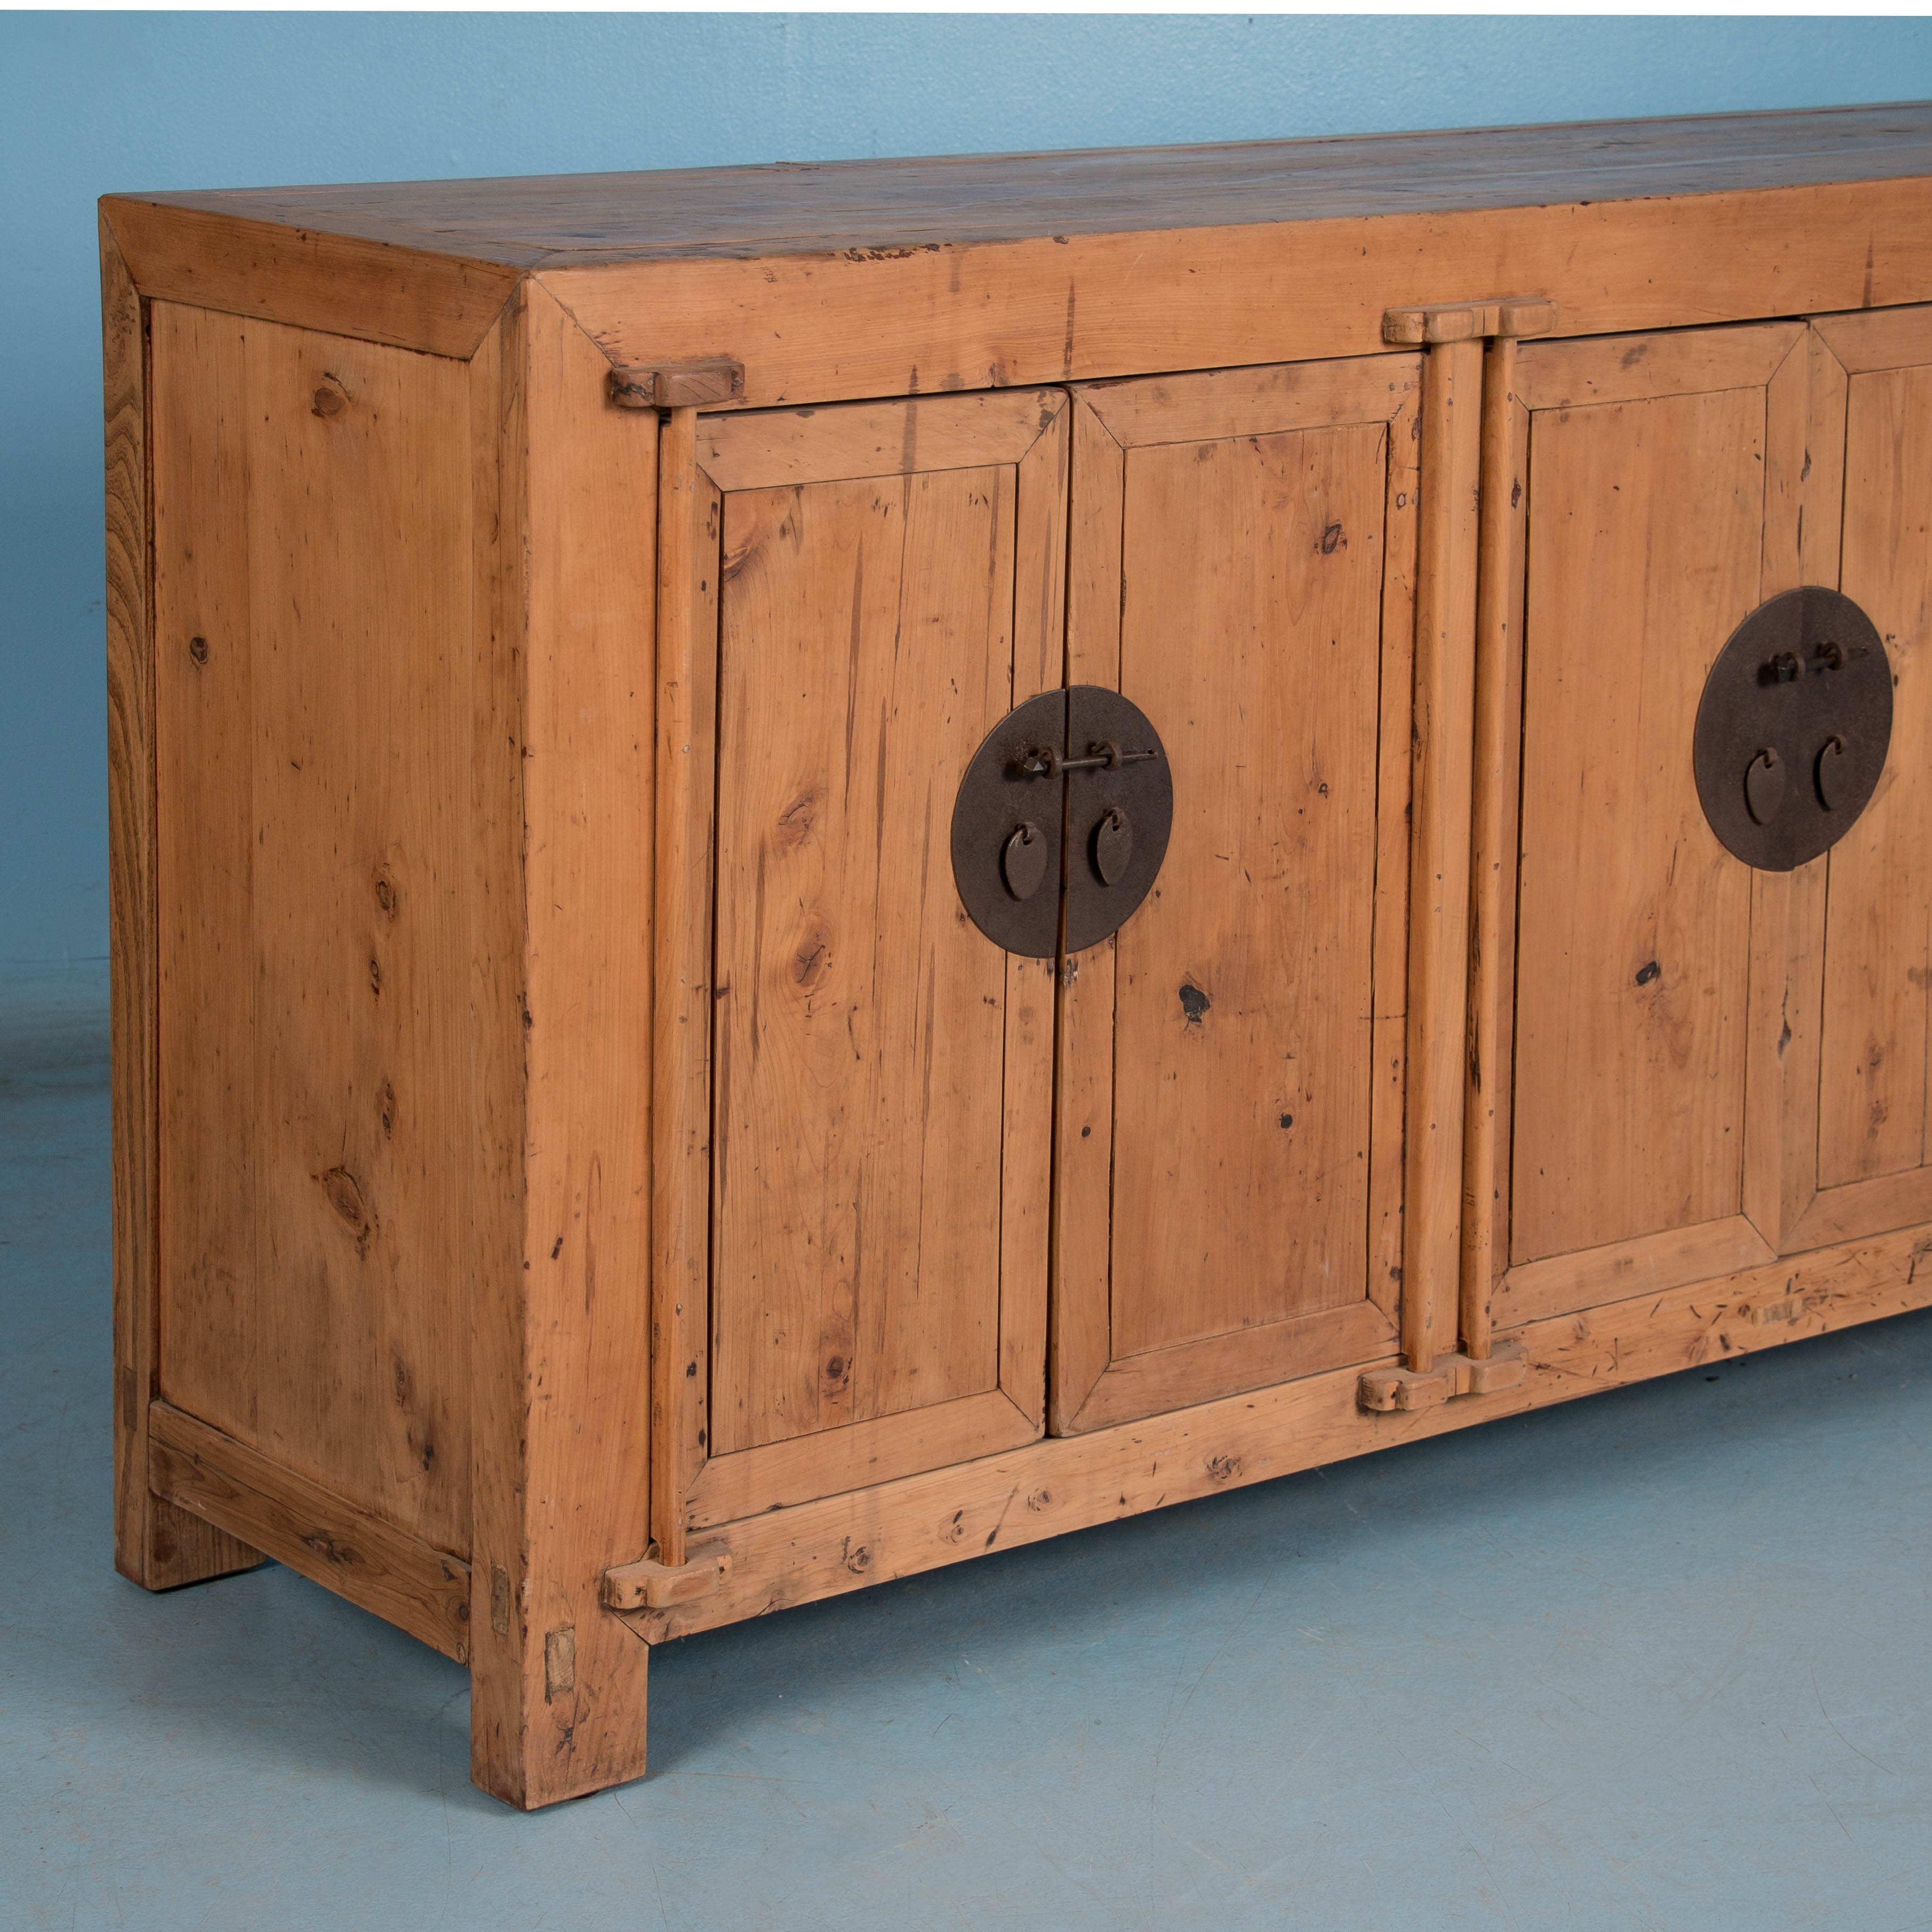 Sideboards | Scandinavian Antiques | Antique Furniture For Sale with Natural Oak Wood 78 Inch Sideboards (Image 28 of 30)